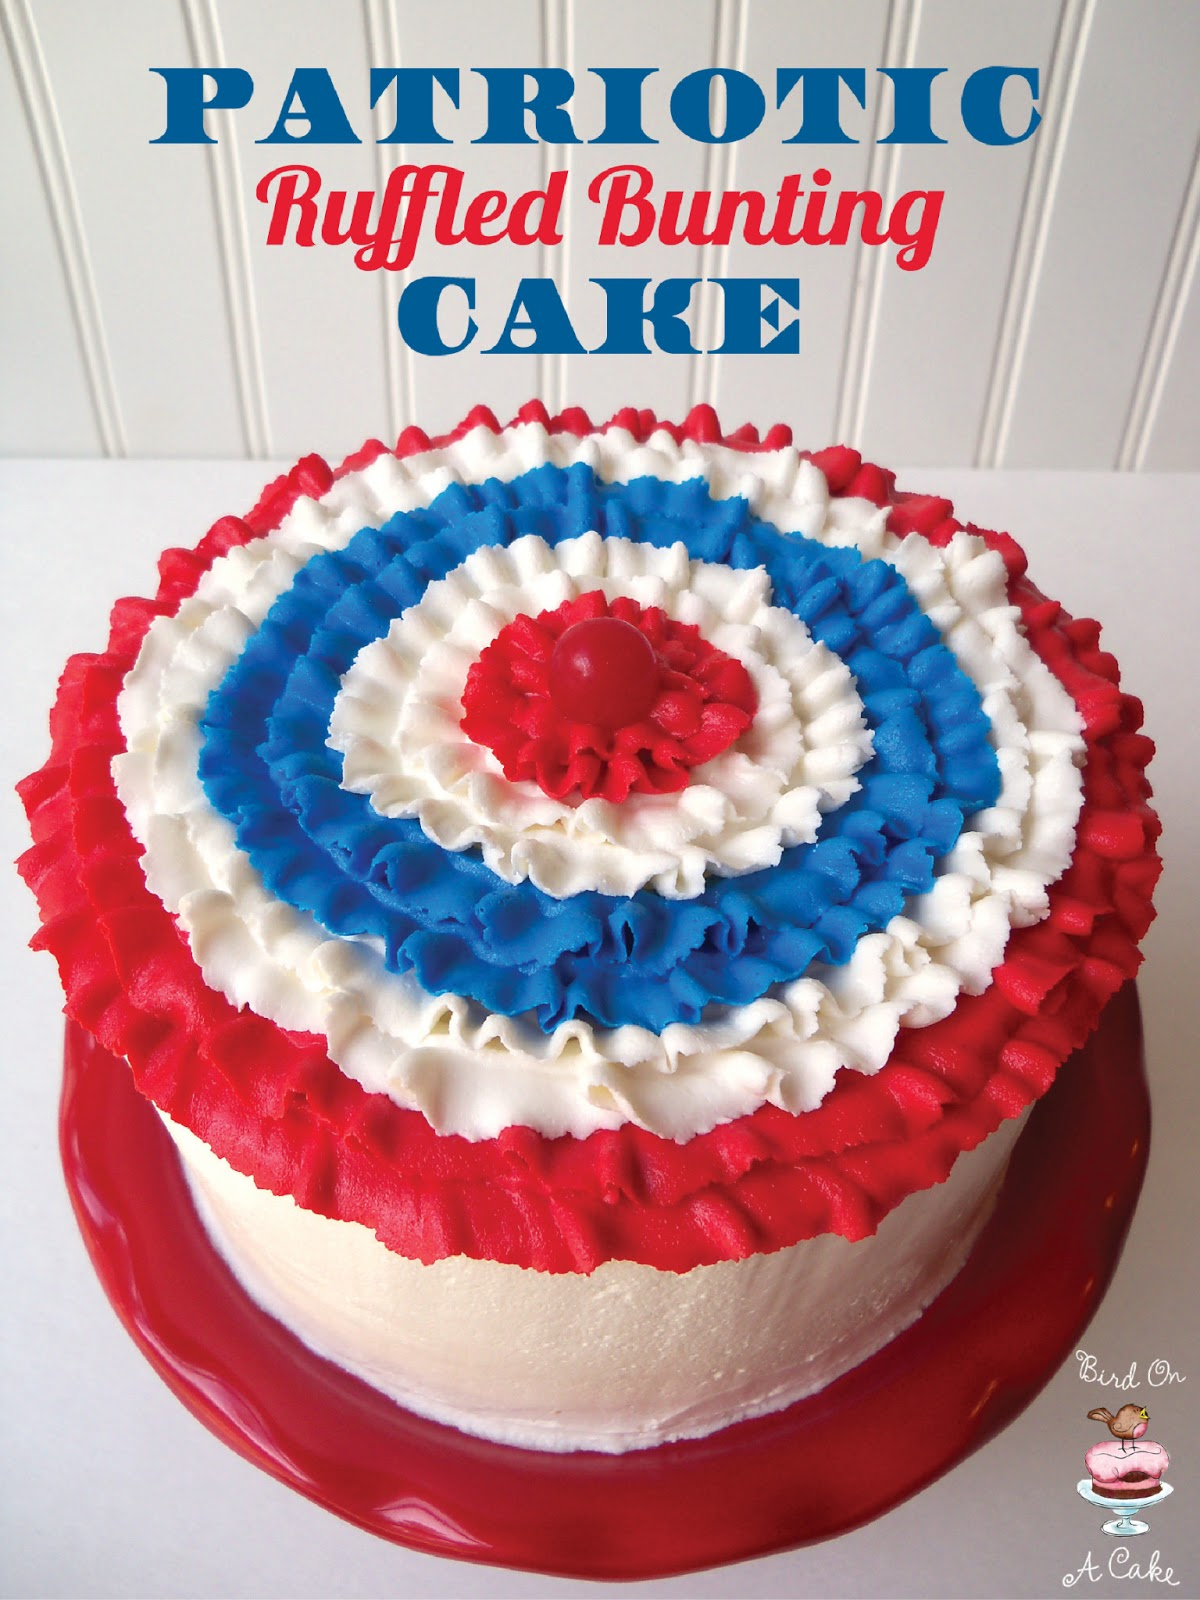 Bird On A Cake Patriotic Ruffled Bunting Cake